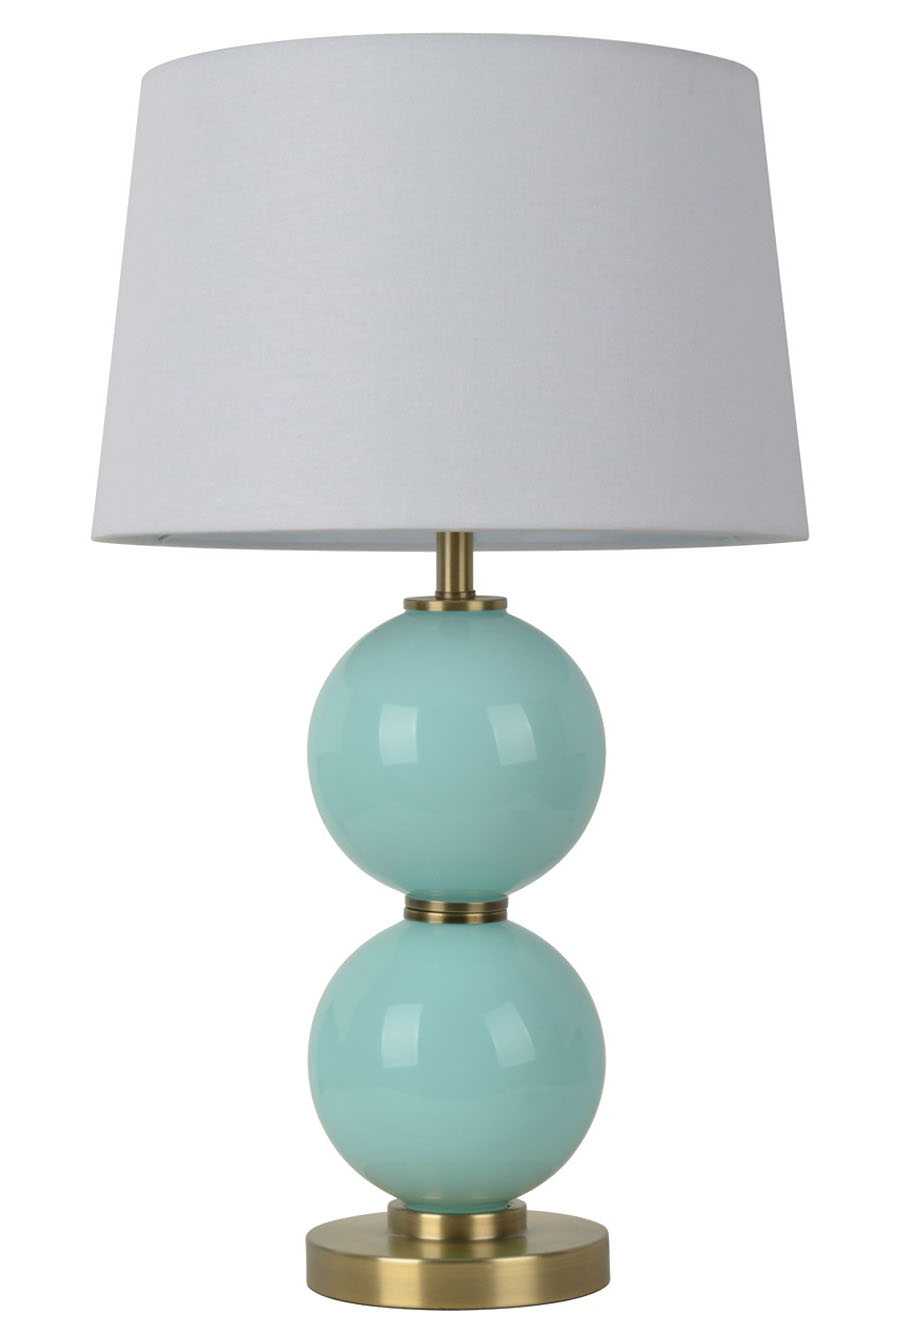 Glass Table Lamp with Touch On/Off